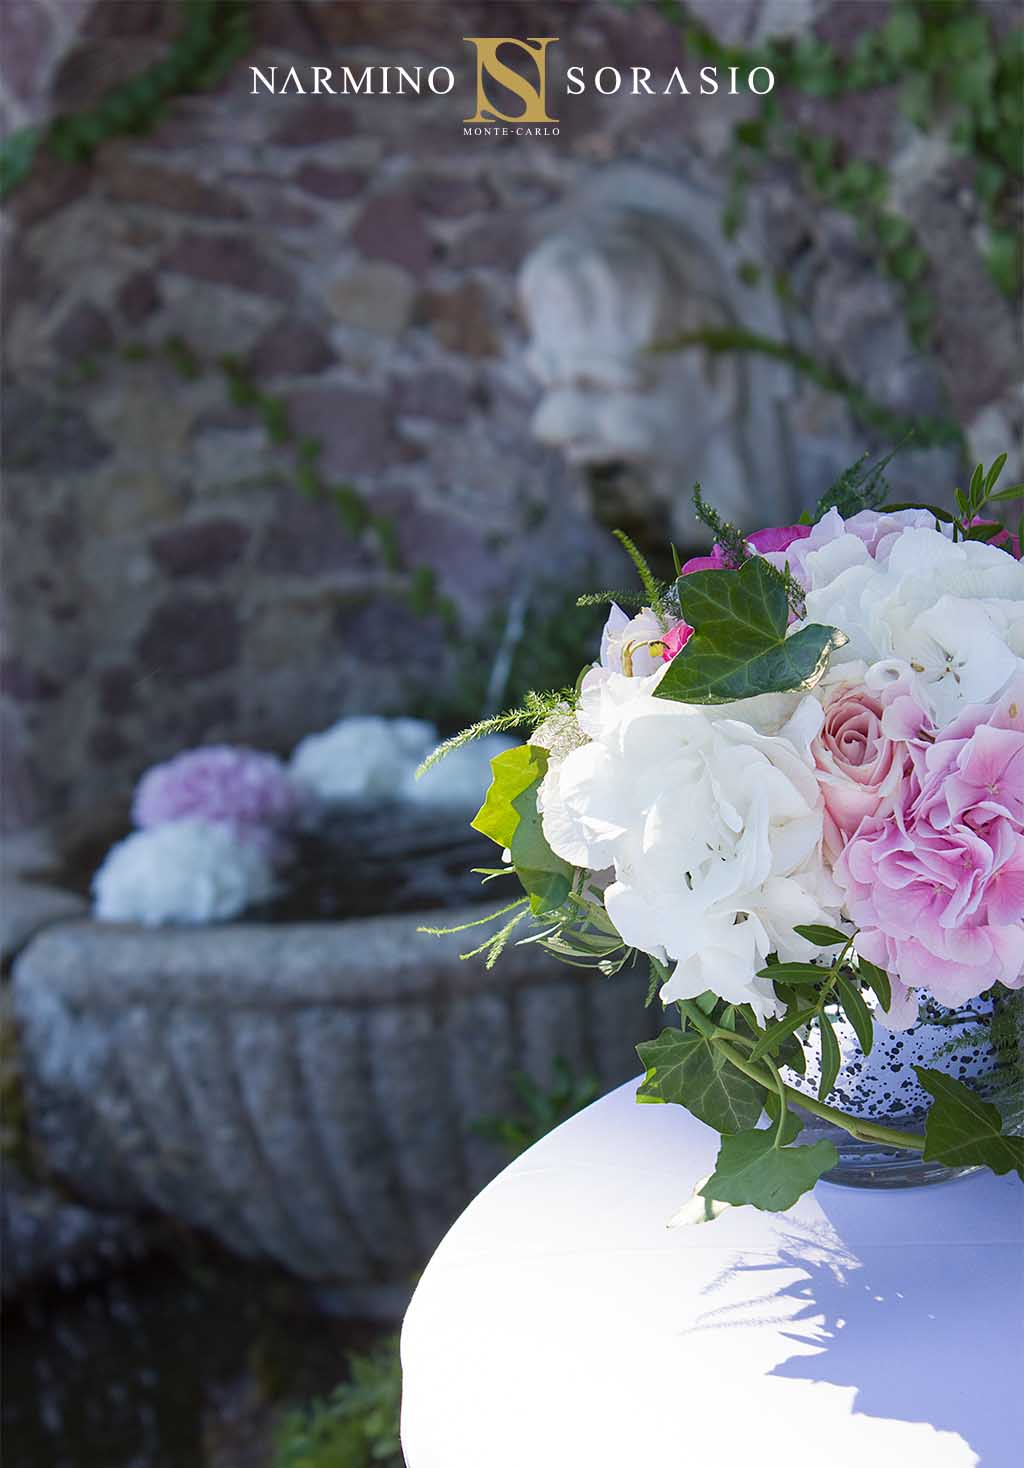 Flowers and bouquet to decorate a wedding